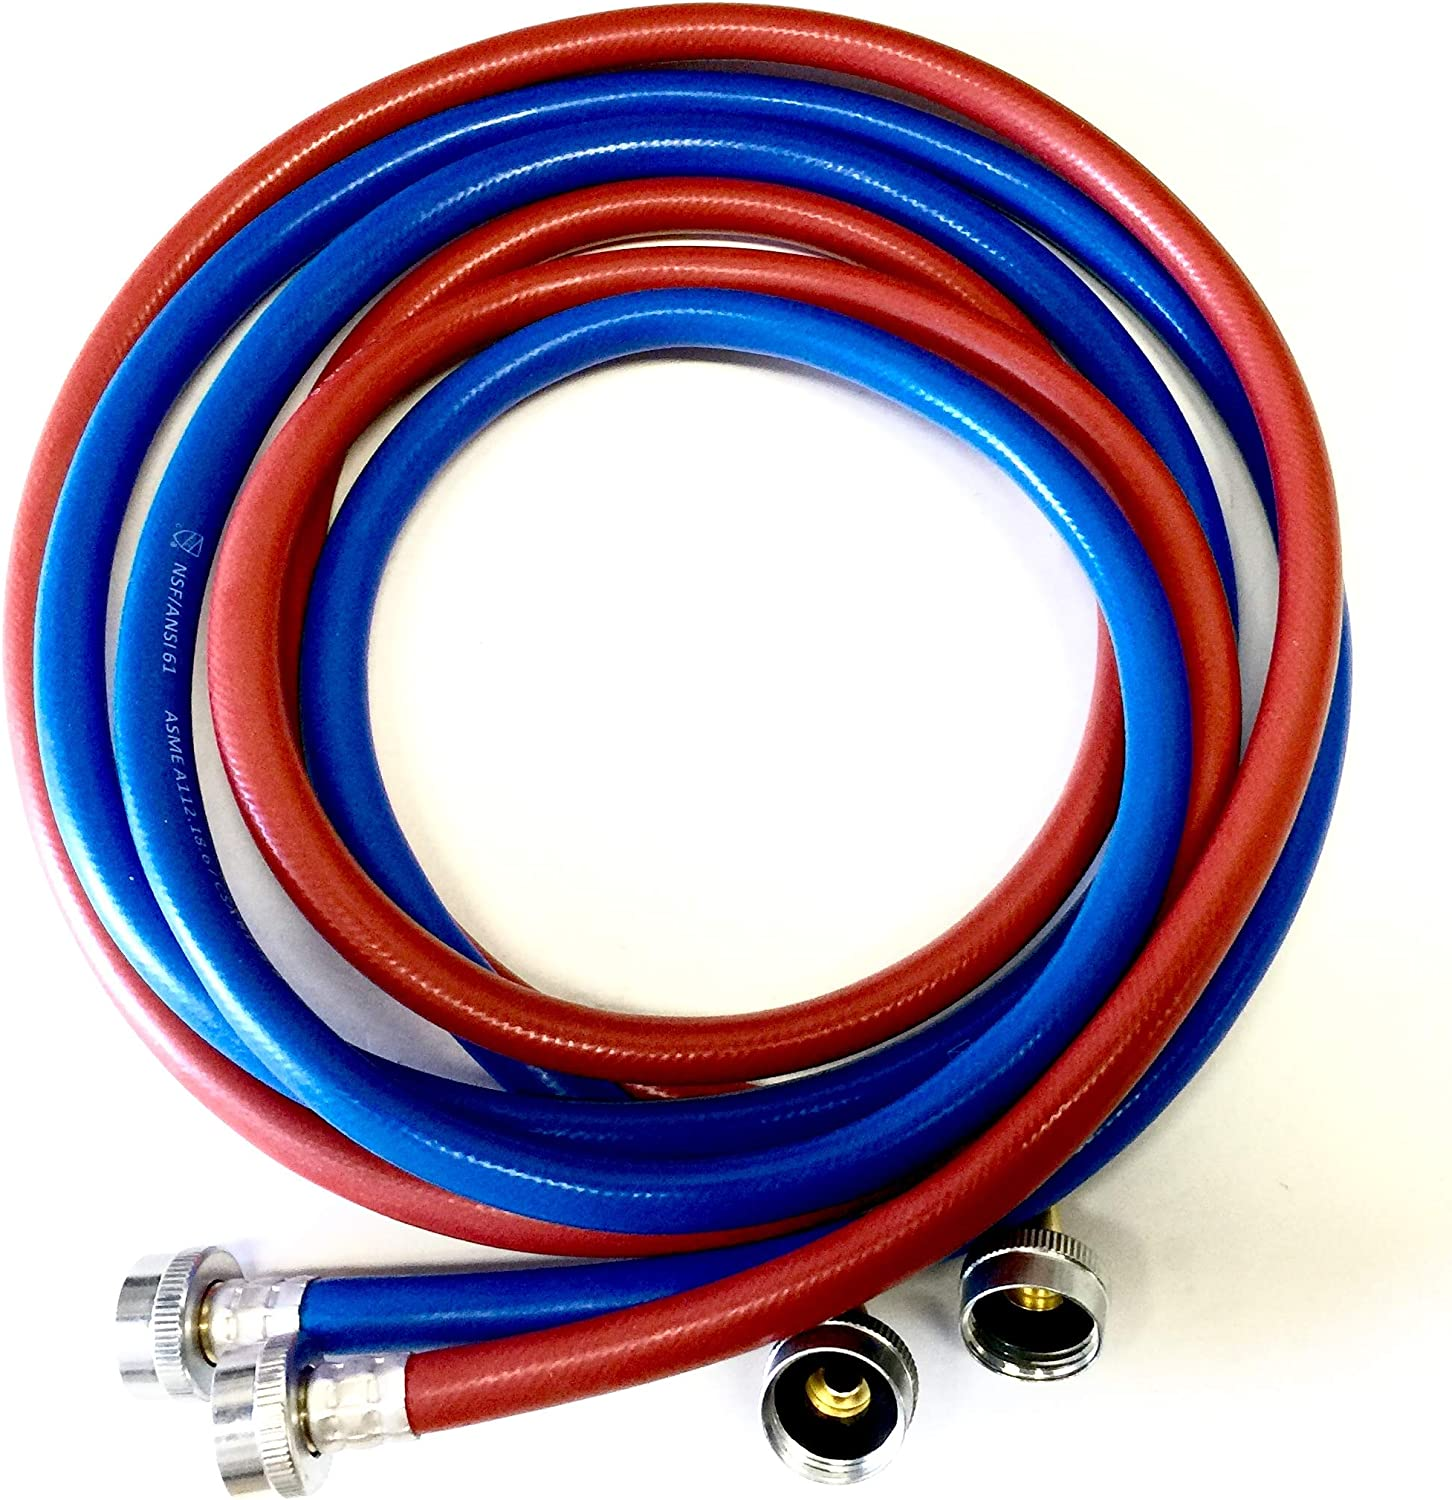 2-Pack PVC and Inside Nylon Braided Premium Washer Hoses - 6FT Lead Free Burst Proof Red and Blue Colored Water Inlet Supply Lines - Universal 90 Degree Elbow Connection